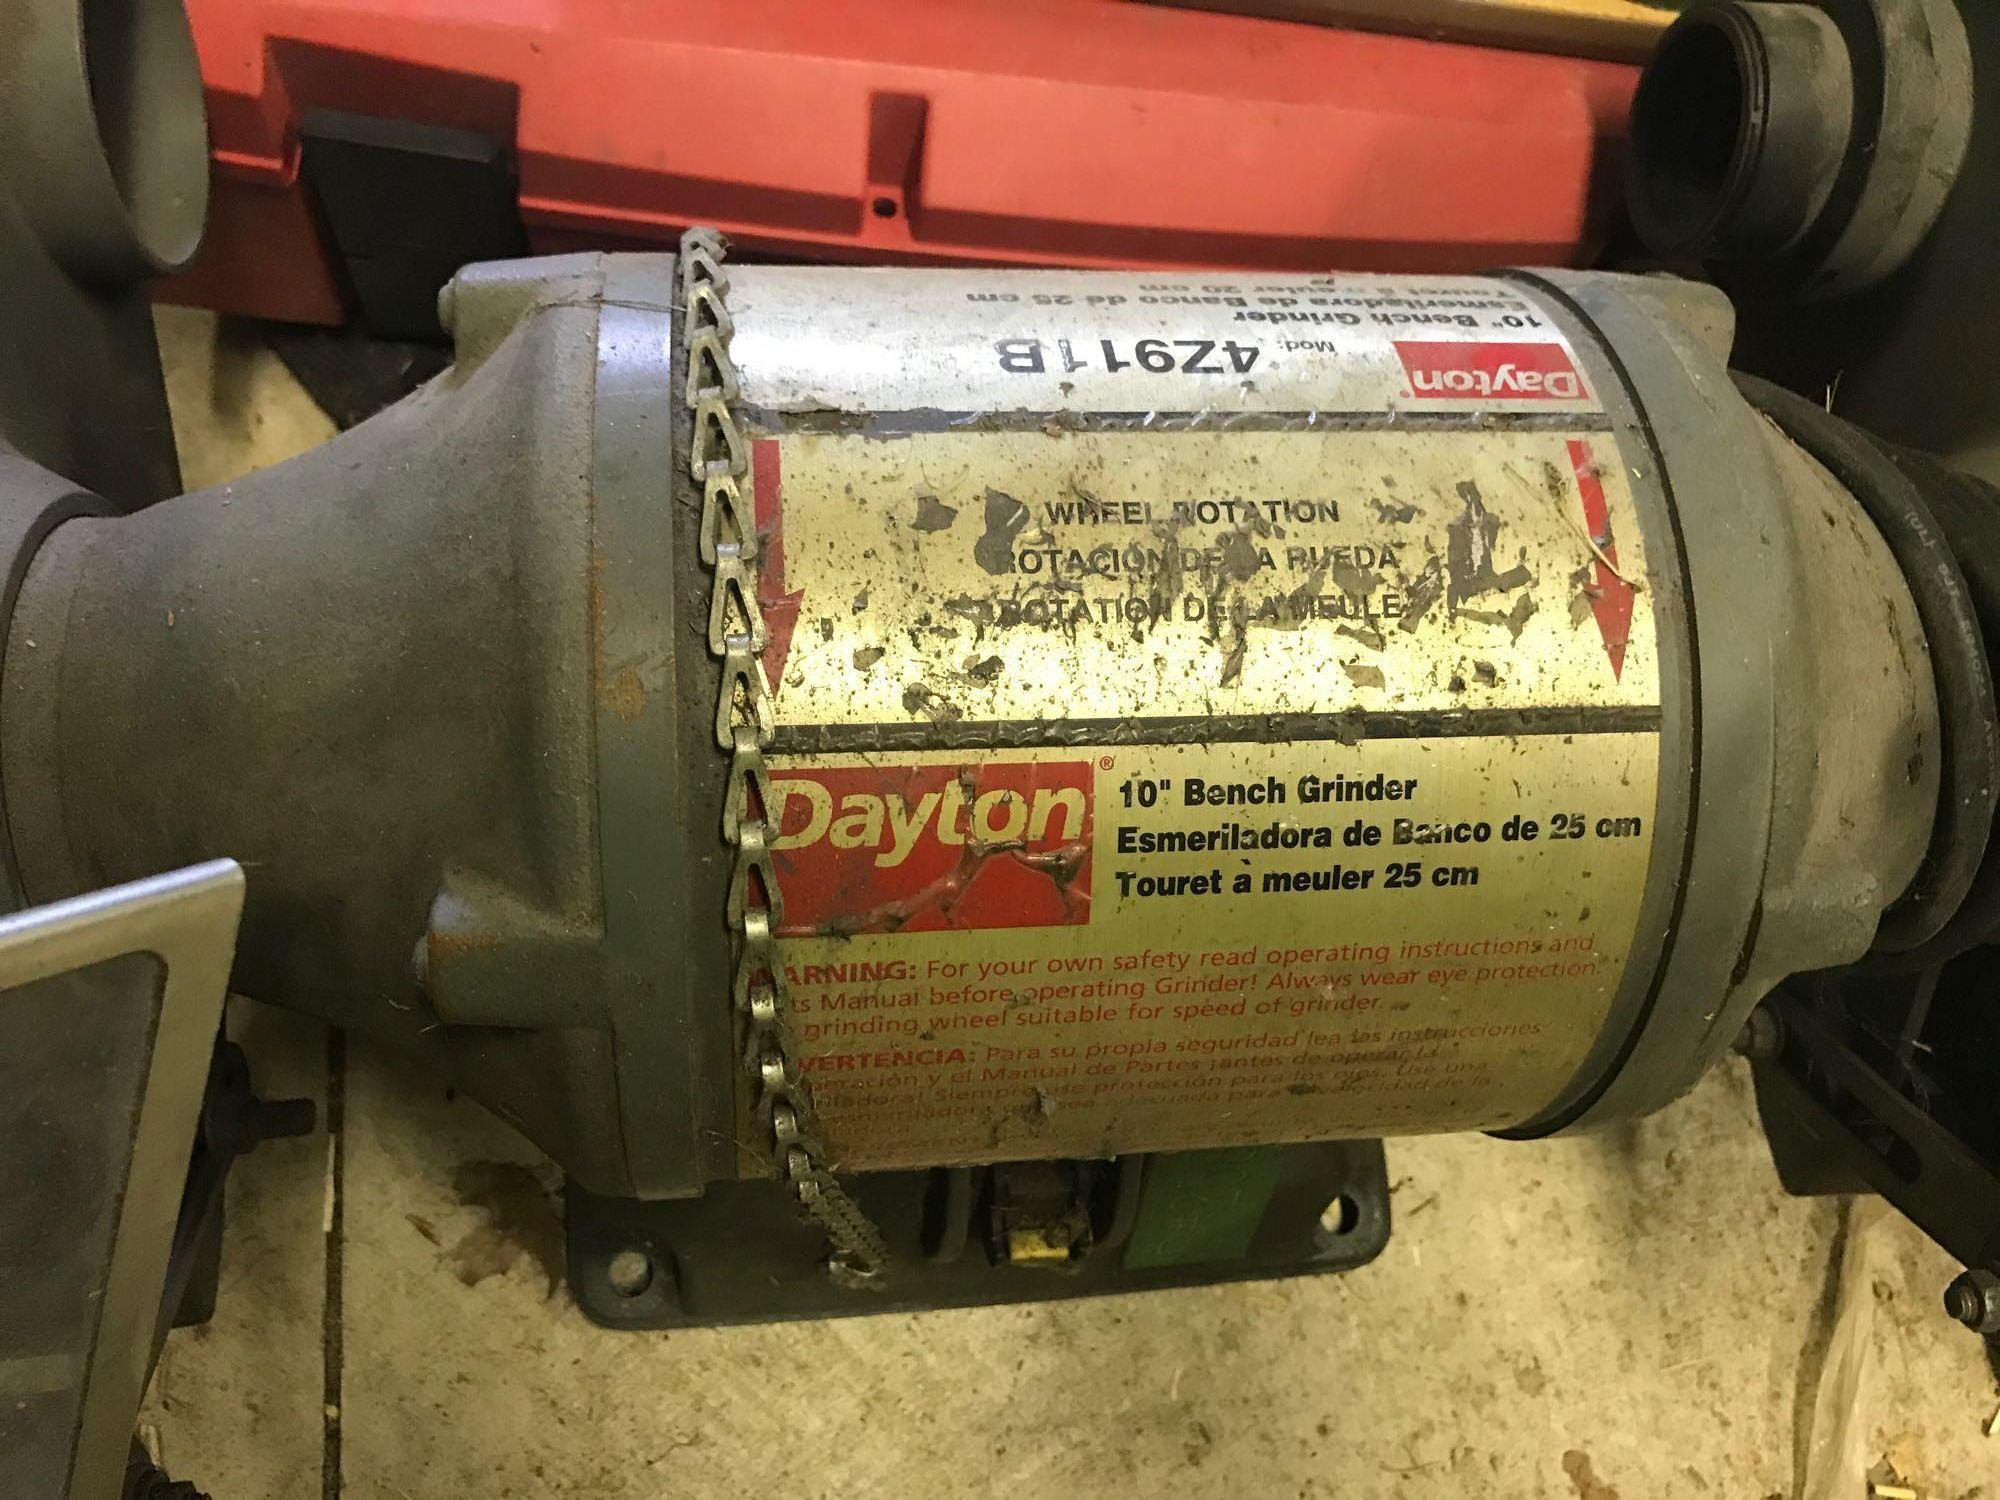 Incredible Dayton 10 Inch Bench Grinder Model 4Z911B Powers On Andrewgaddart Wooden Chair Designs For Living Room Andrewgaddartcom